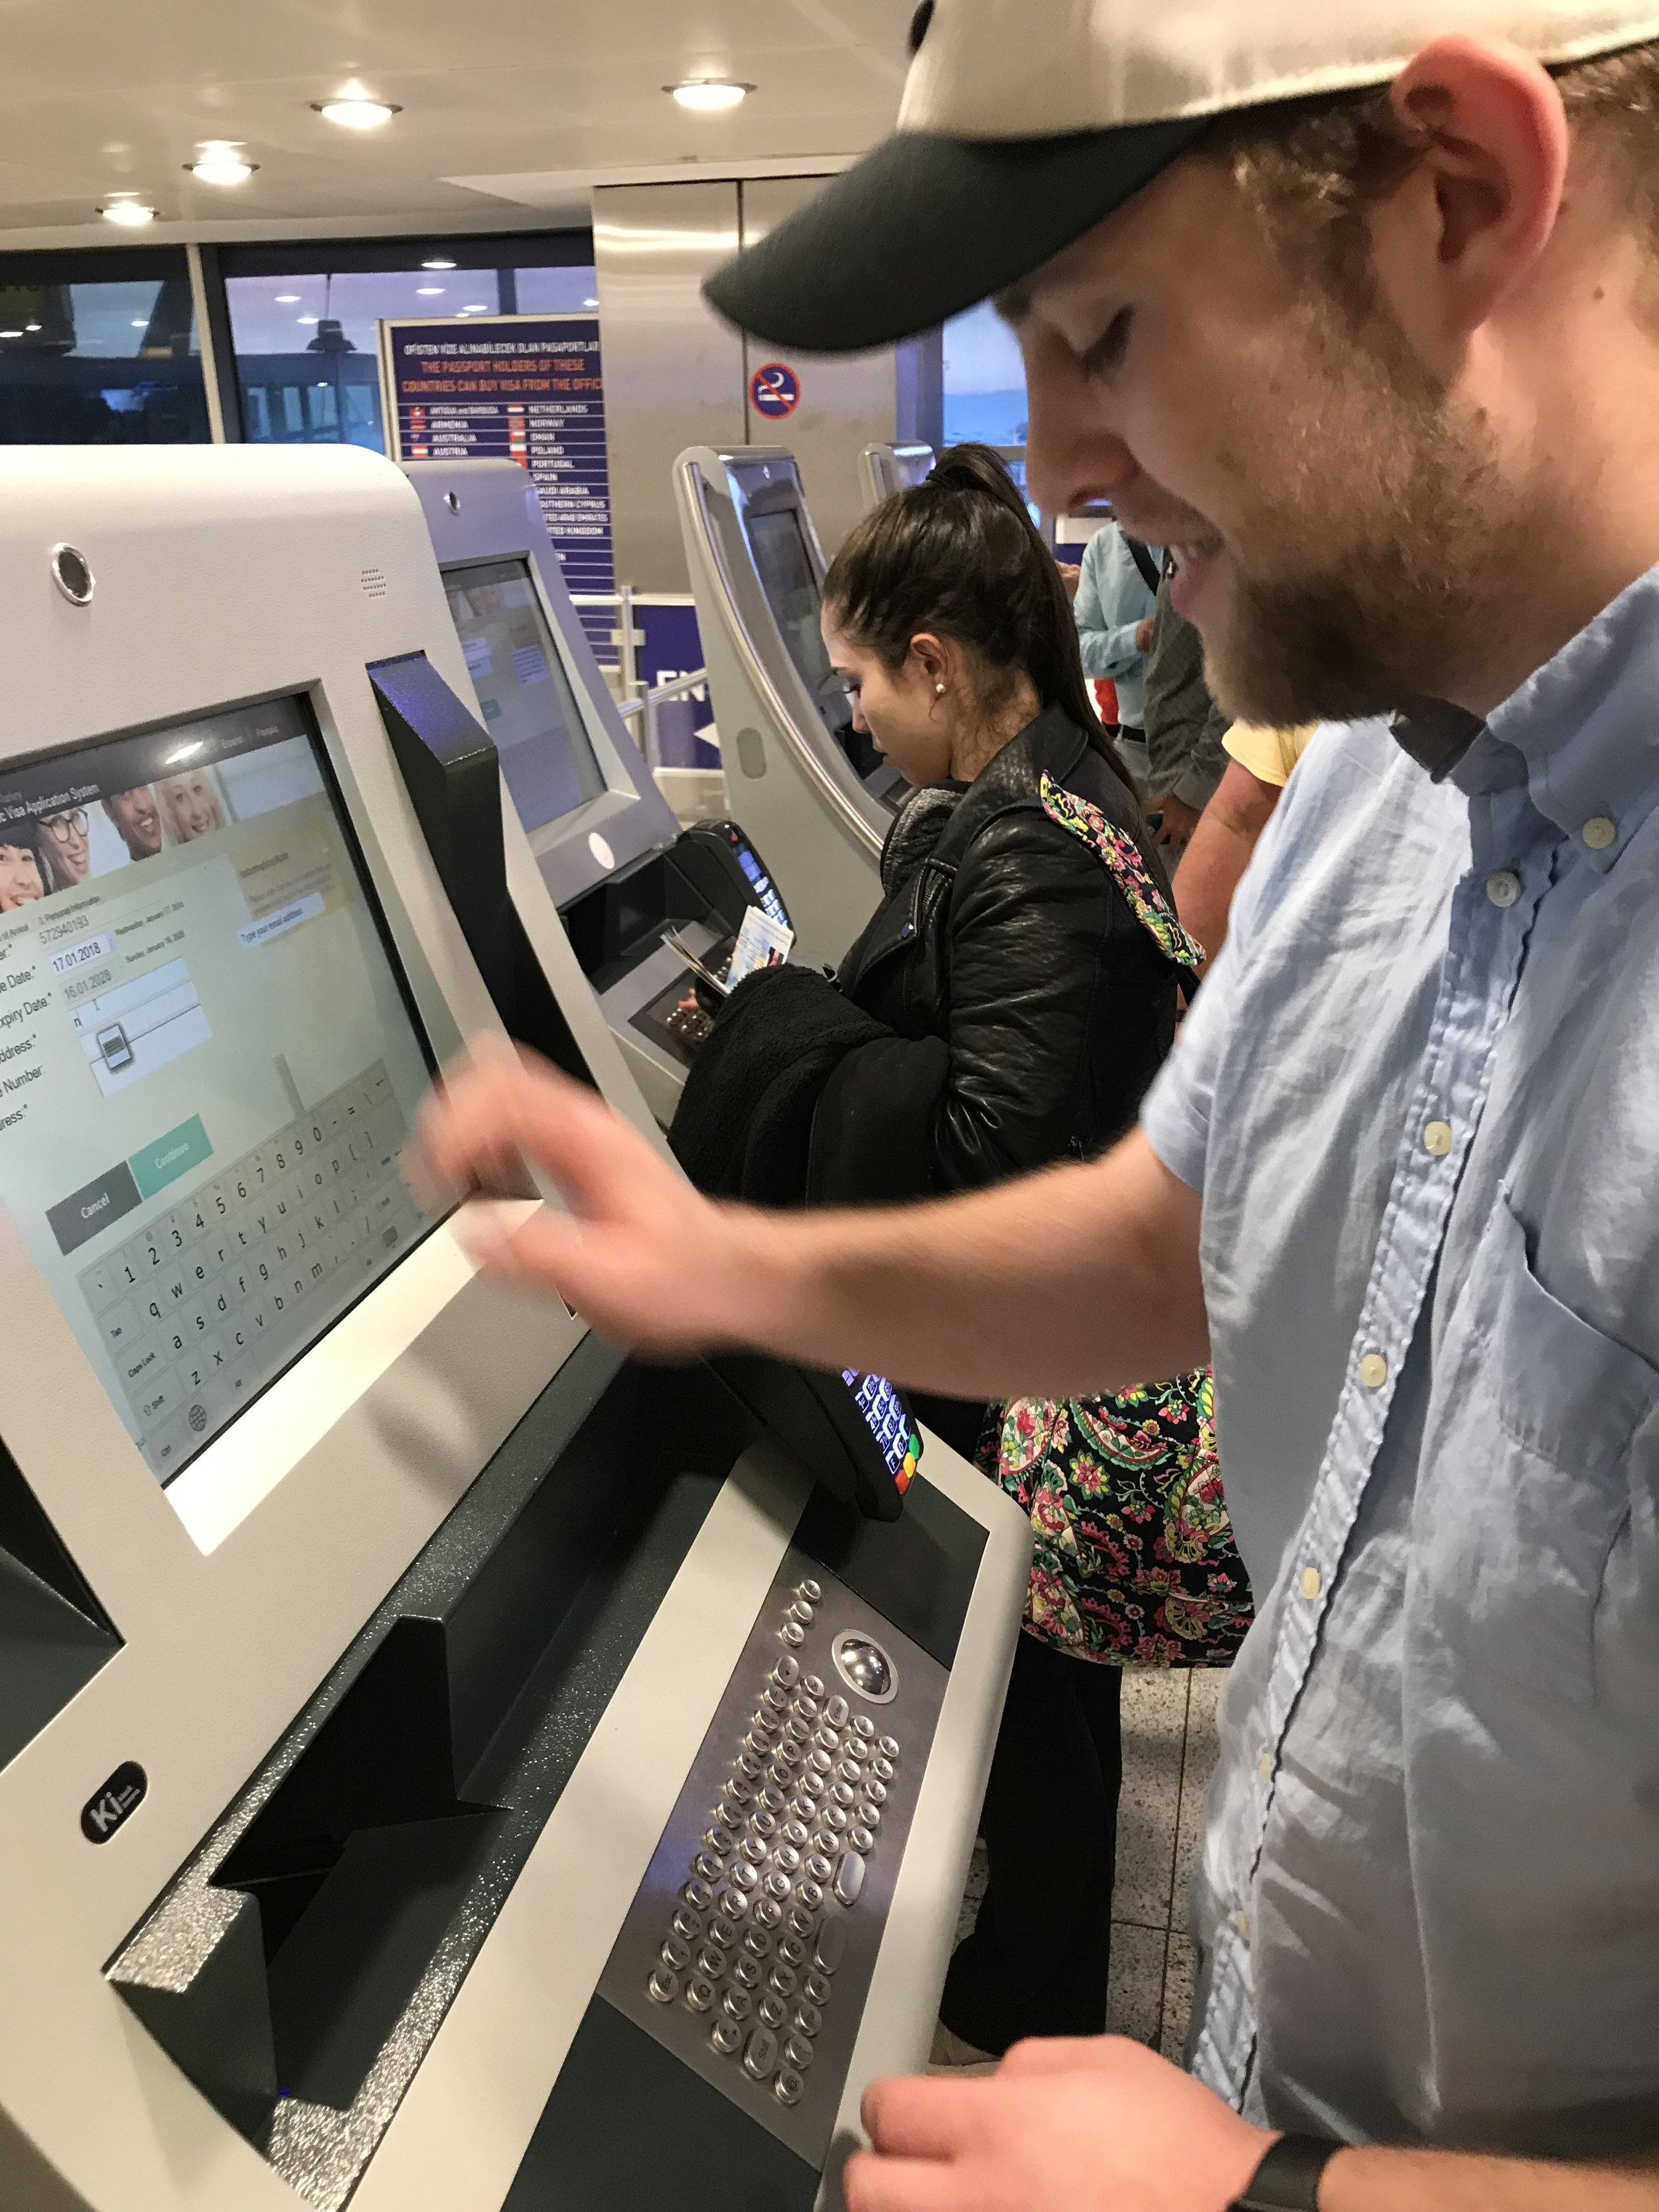 Airport kiosks in Istanbul dispense visas to Newhouse students so they can enter Turkey.